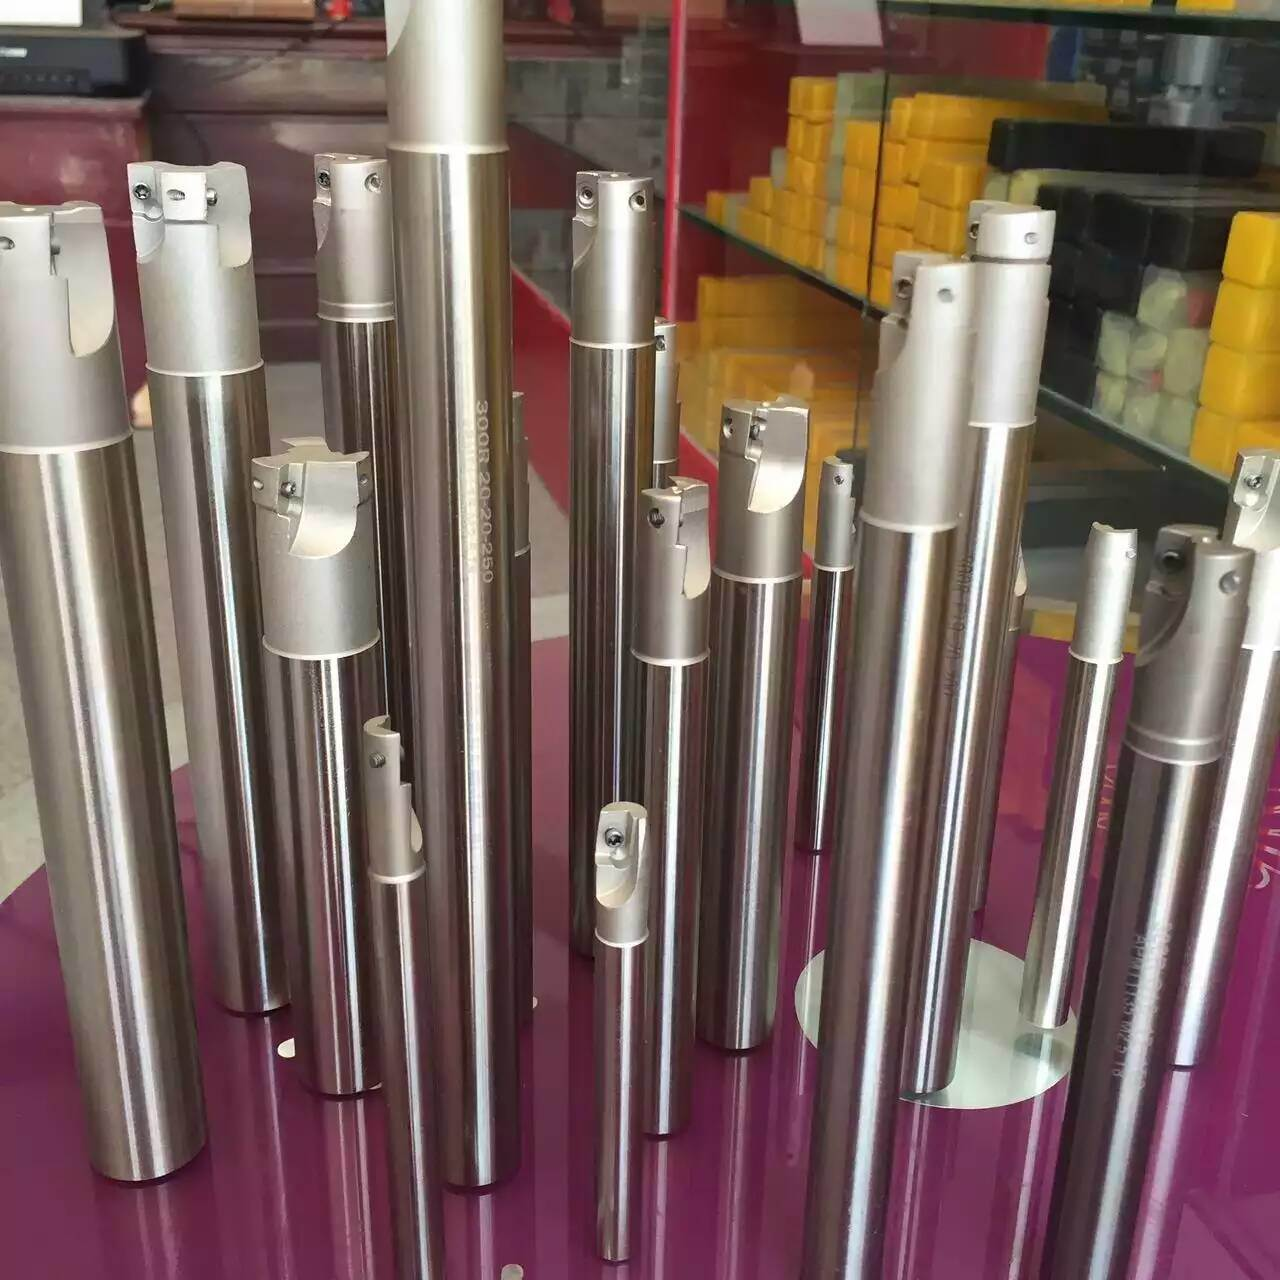 Cutoutil ISO Milling Head Milling Cutters for Apmt Rpmt Spmt Sdmt Inserts Indexable Milling Tools